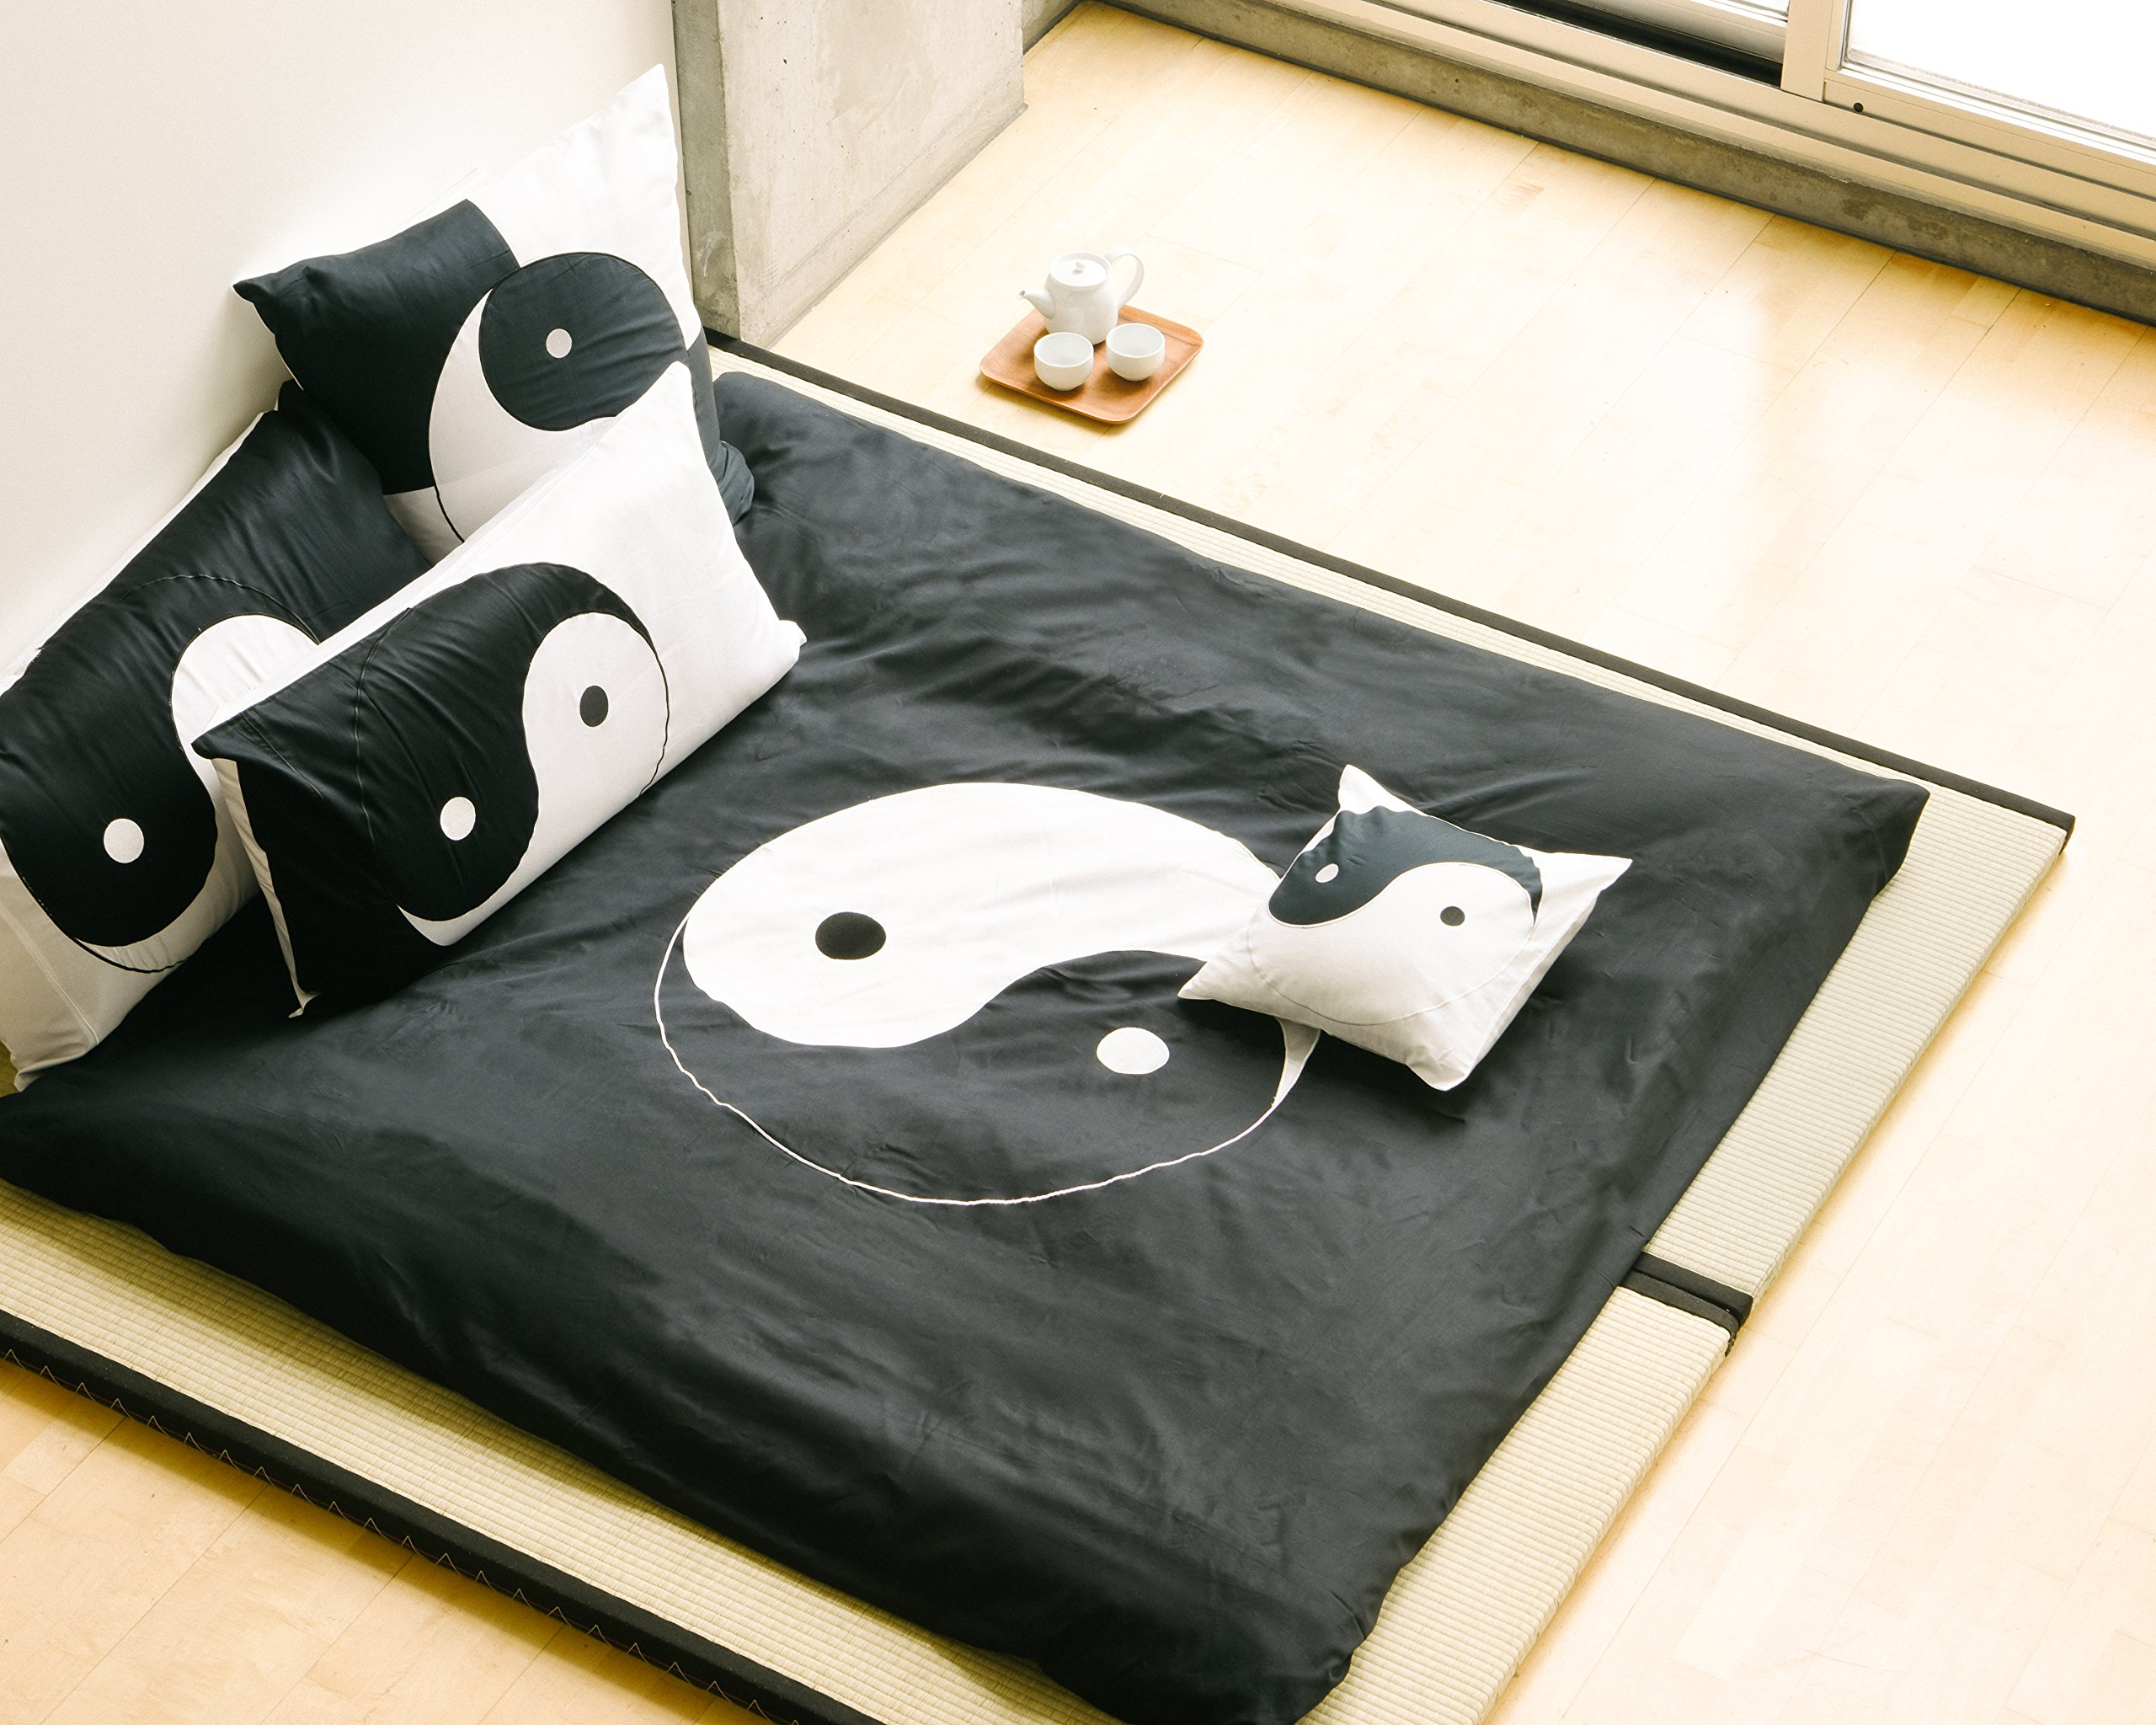 King sized black and white 3 piece Duvet Cover Set, coverlet comforter 106''x92'', 2 Pillows 20''x36''. Asian inspired fashionable decorative design with bold Ying Yang symbol graphic by Orient Sense